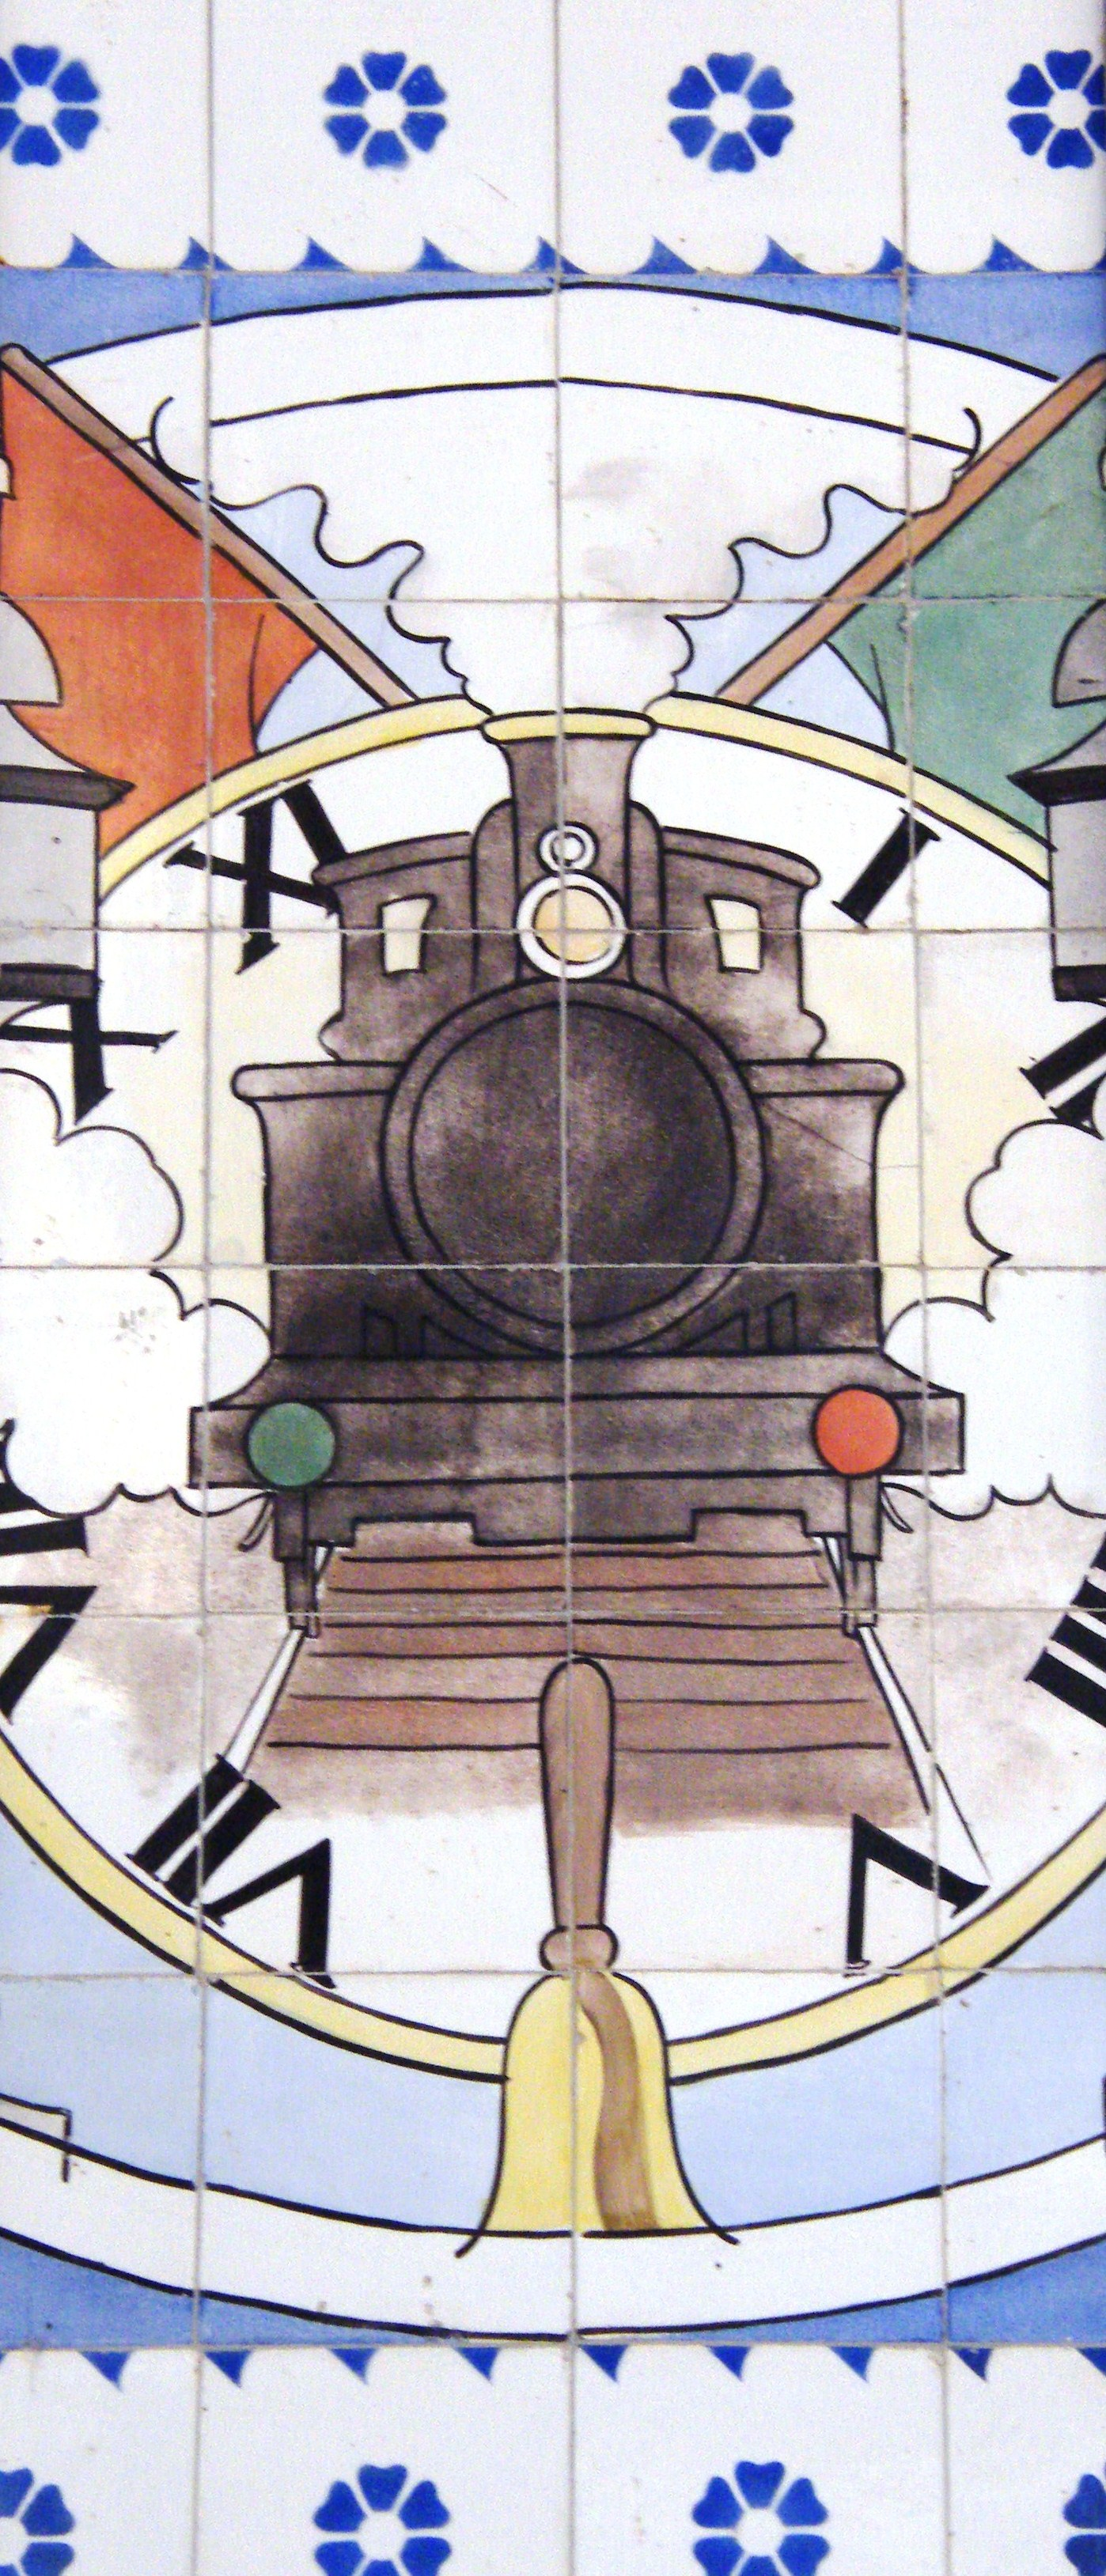 Tile panel in the entrance  hall of Porto Railway Station